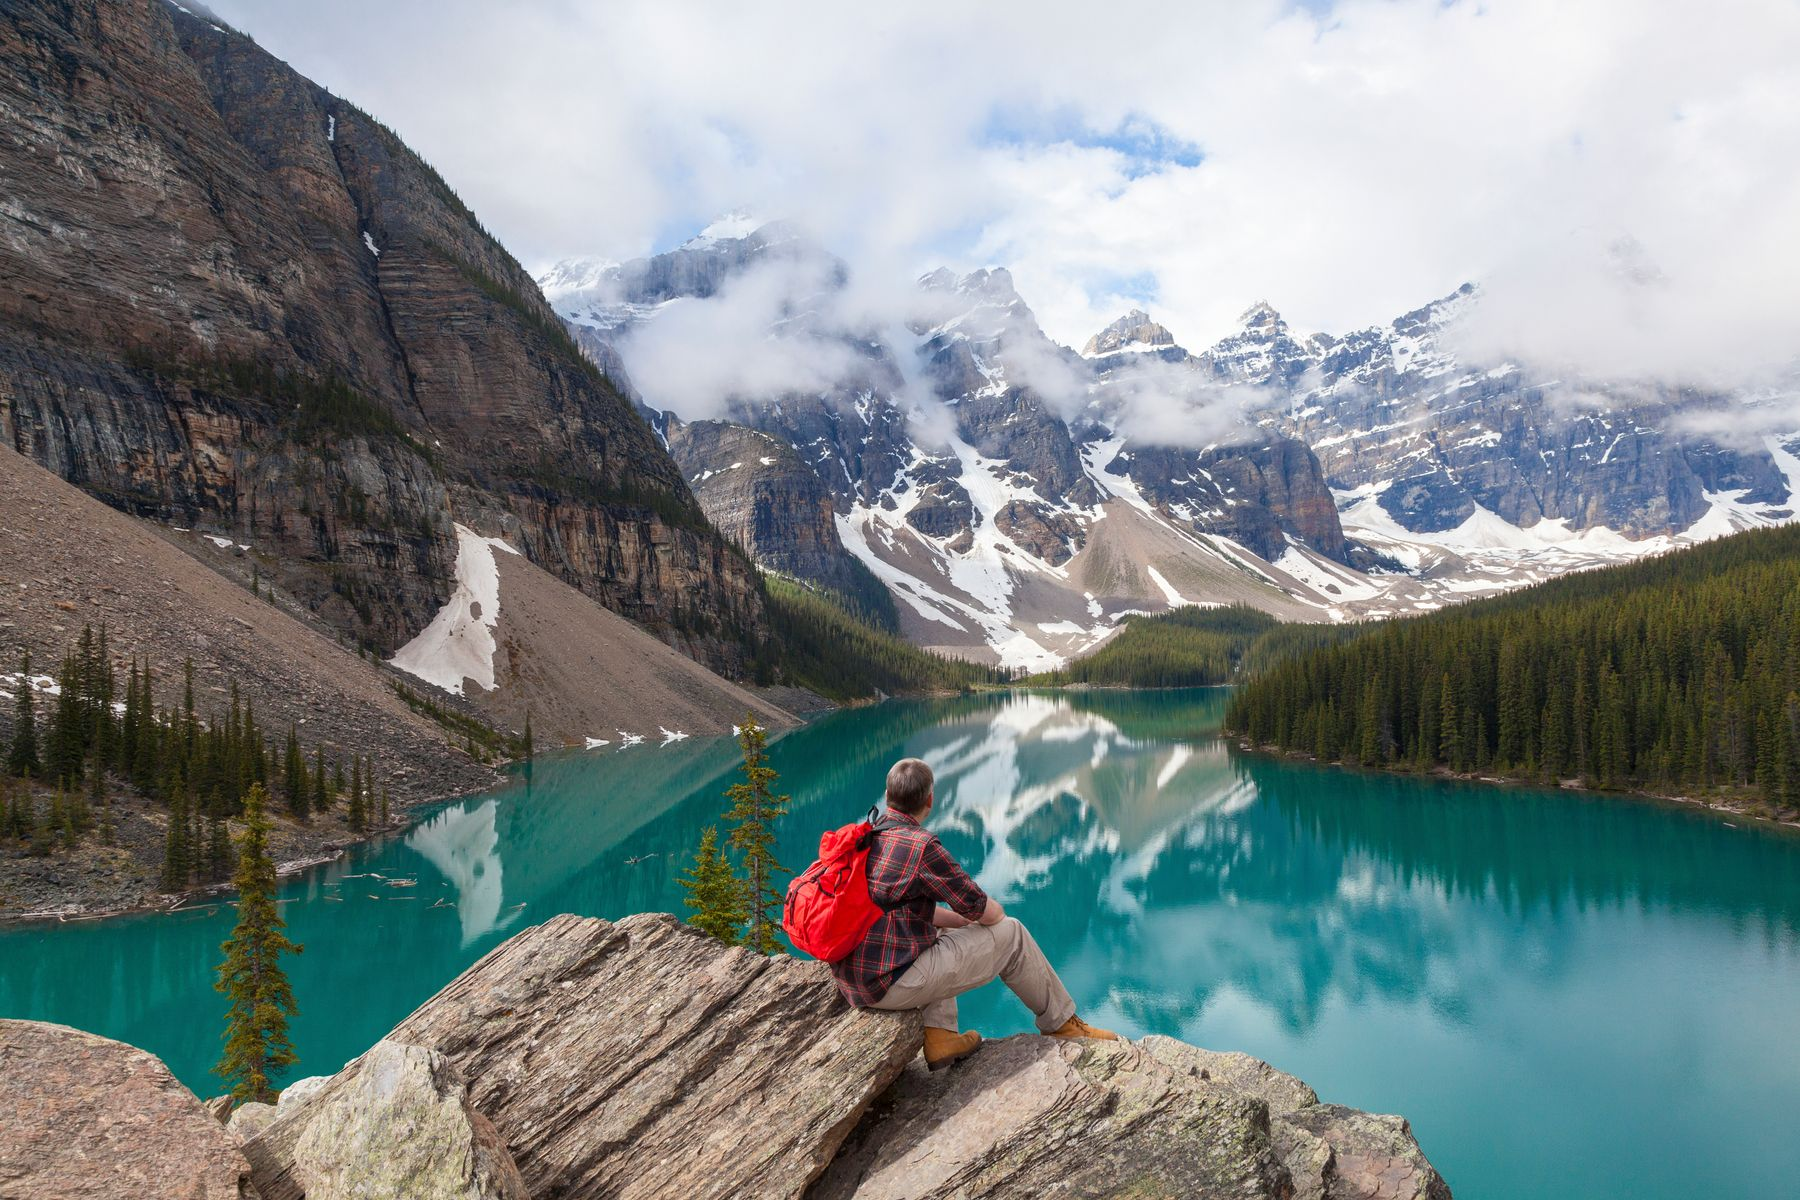 view from behind, a hiker sitting on a rock looking out at a glacial turquoise lake and the Canadian Rockies